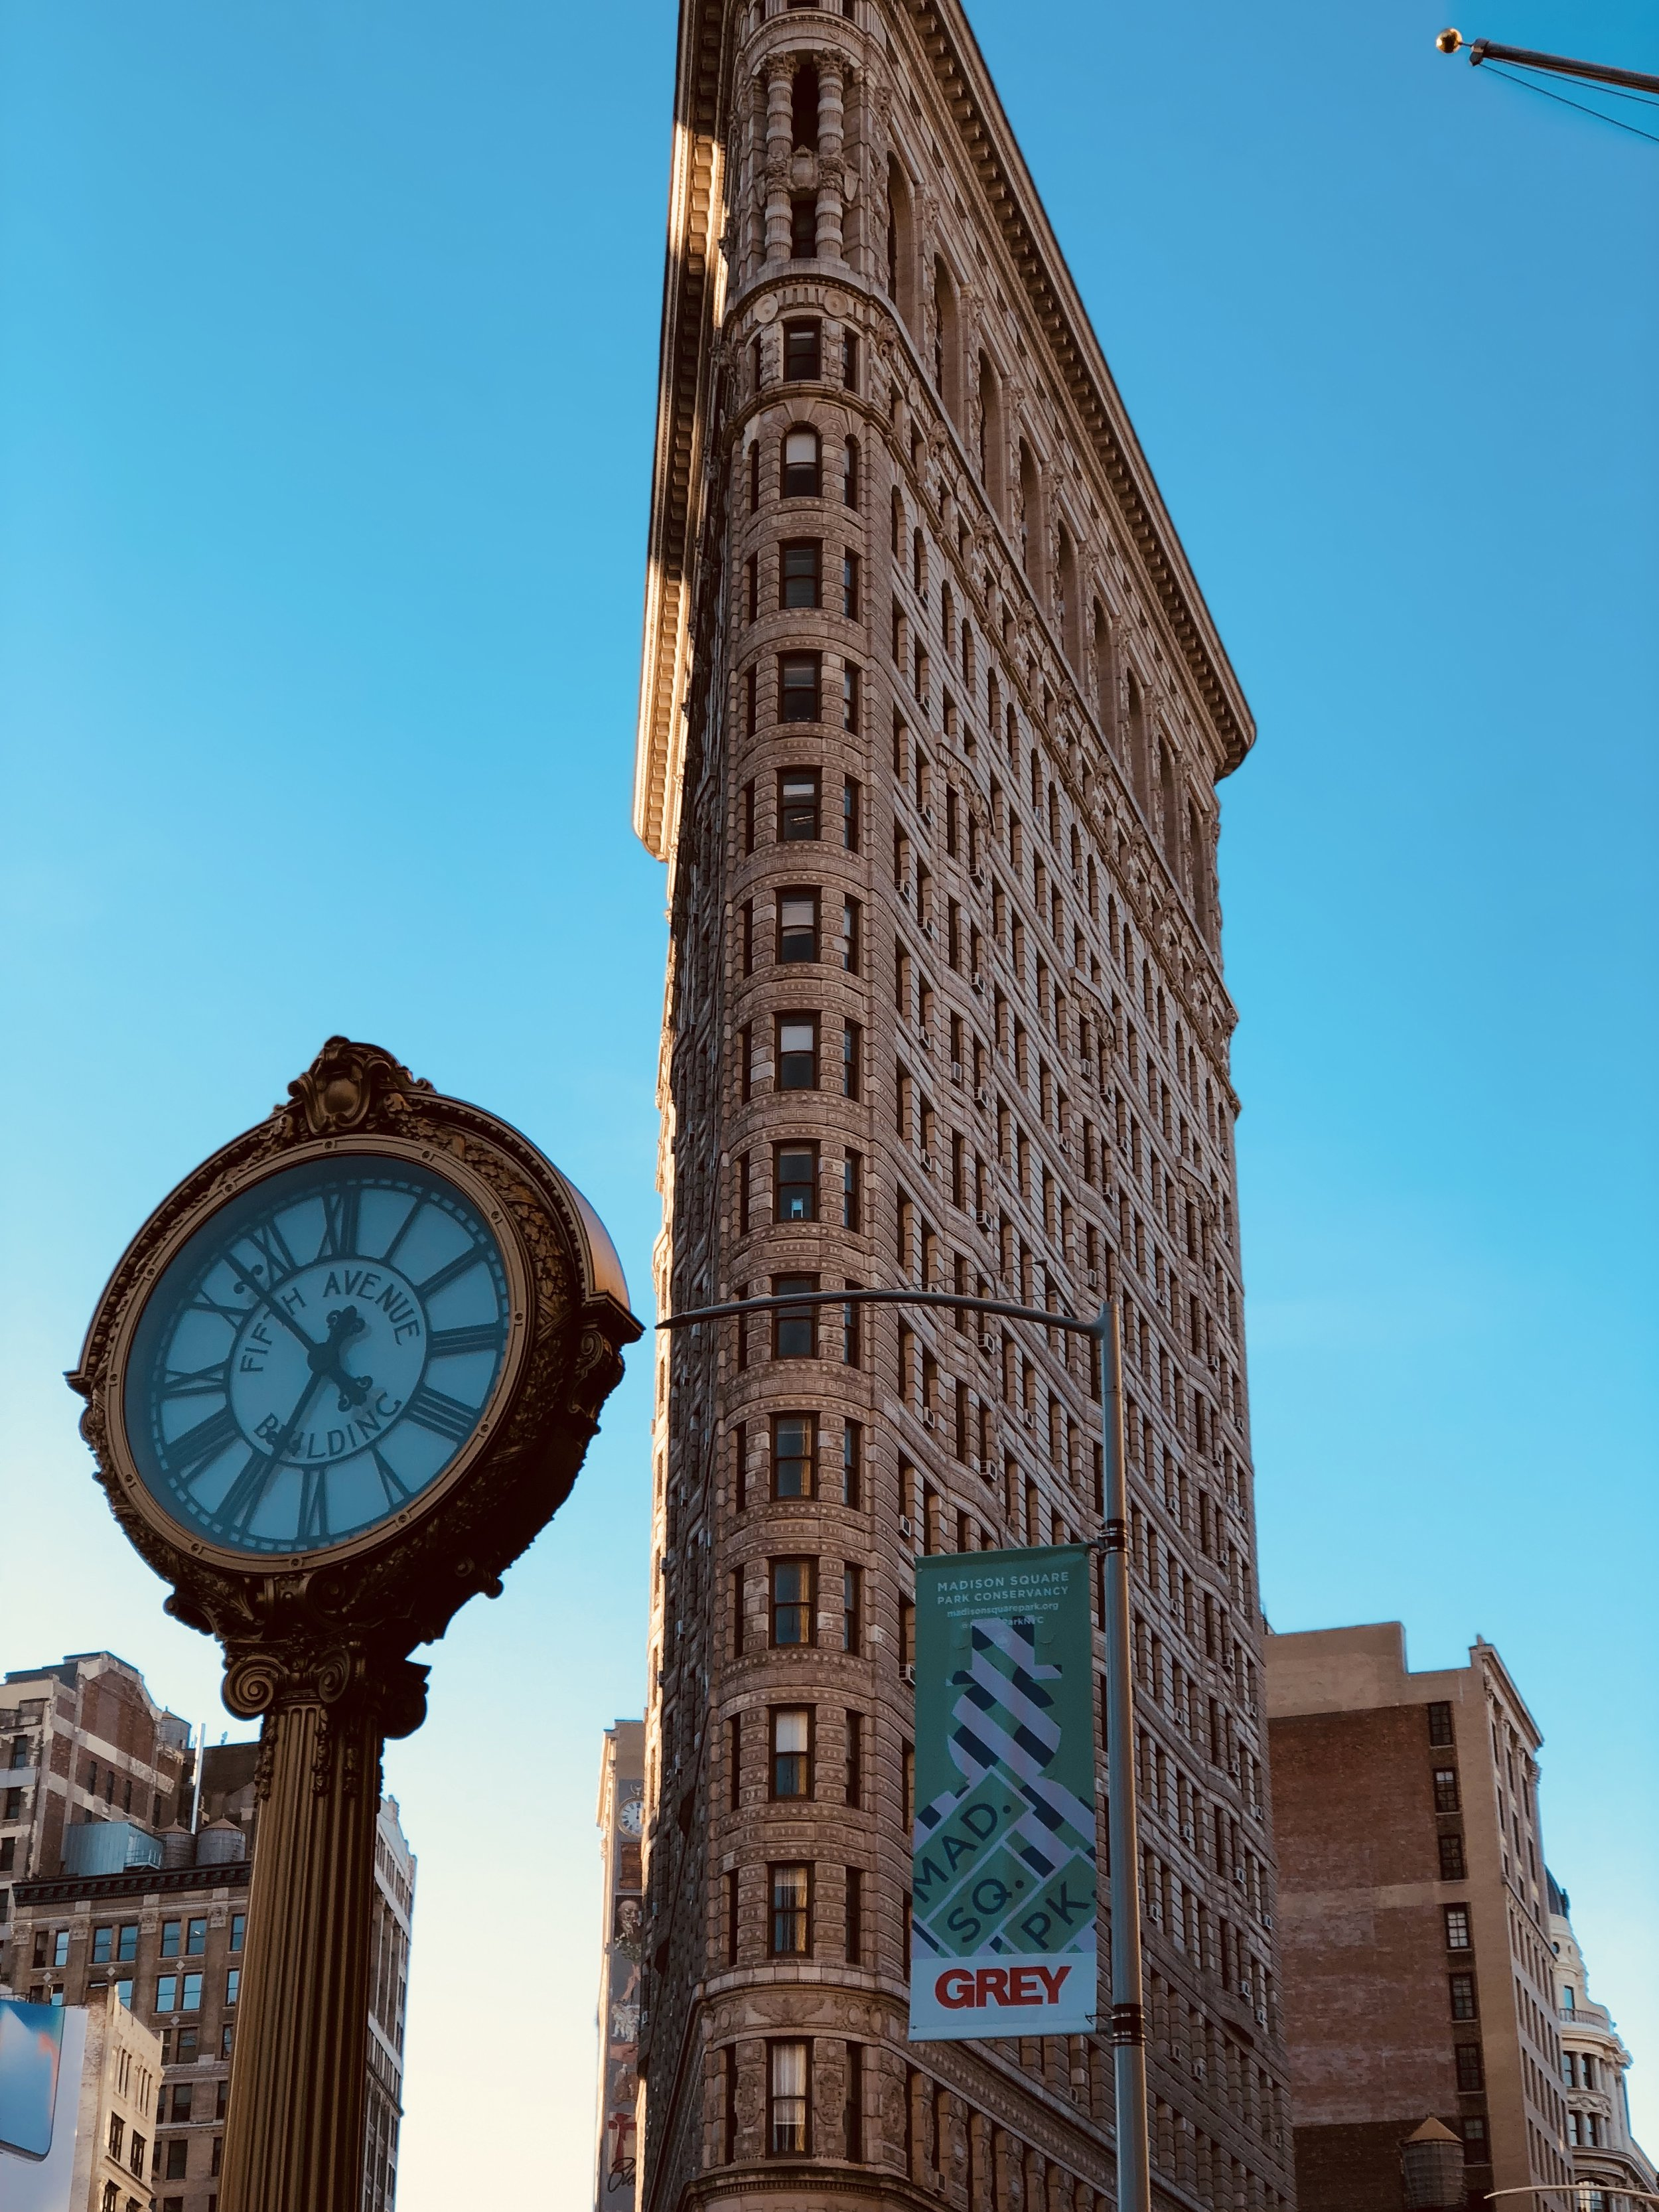 Though one of the tallest buildings of its time, the Flatiron's 300-foot ascent pales in comparison to today's skyscrapers.